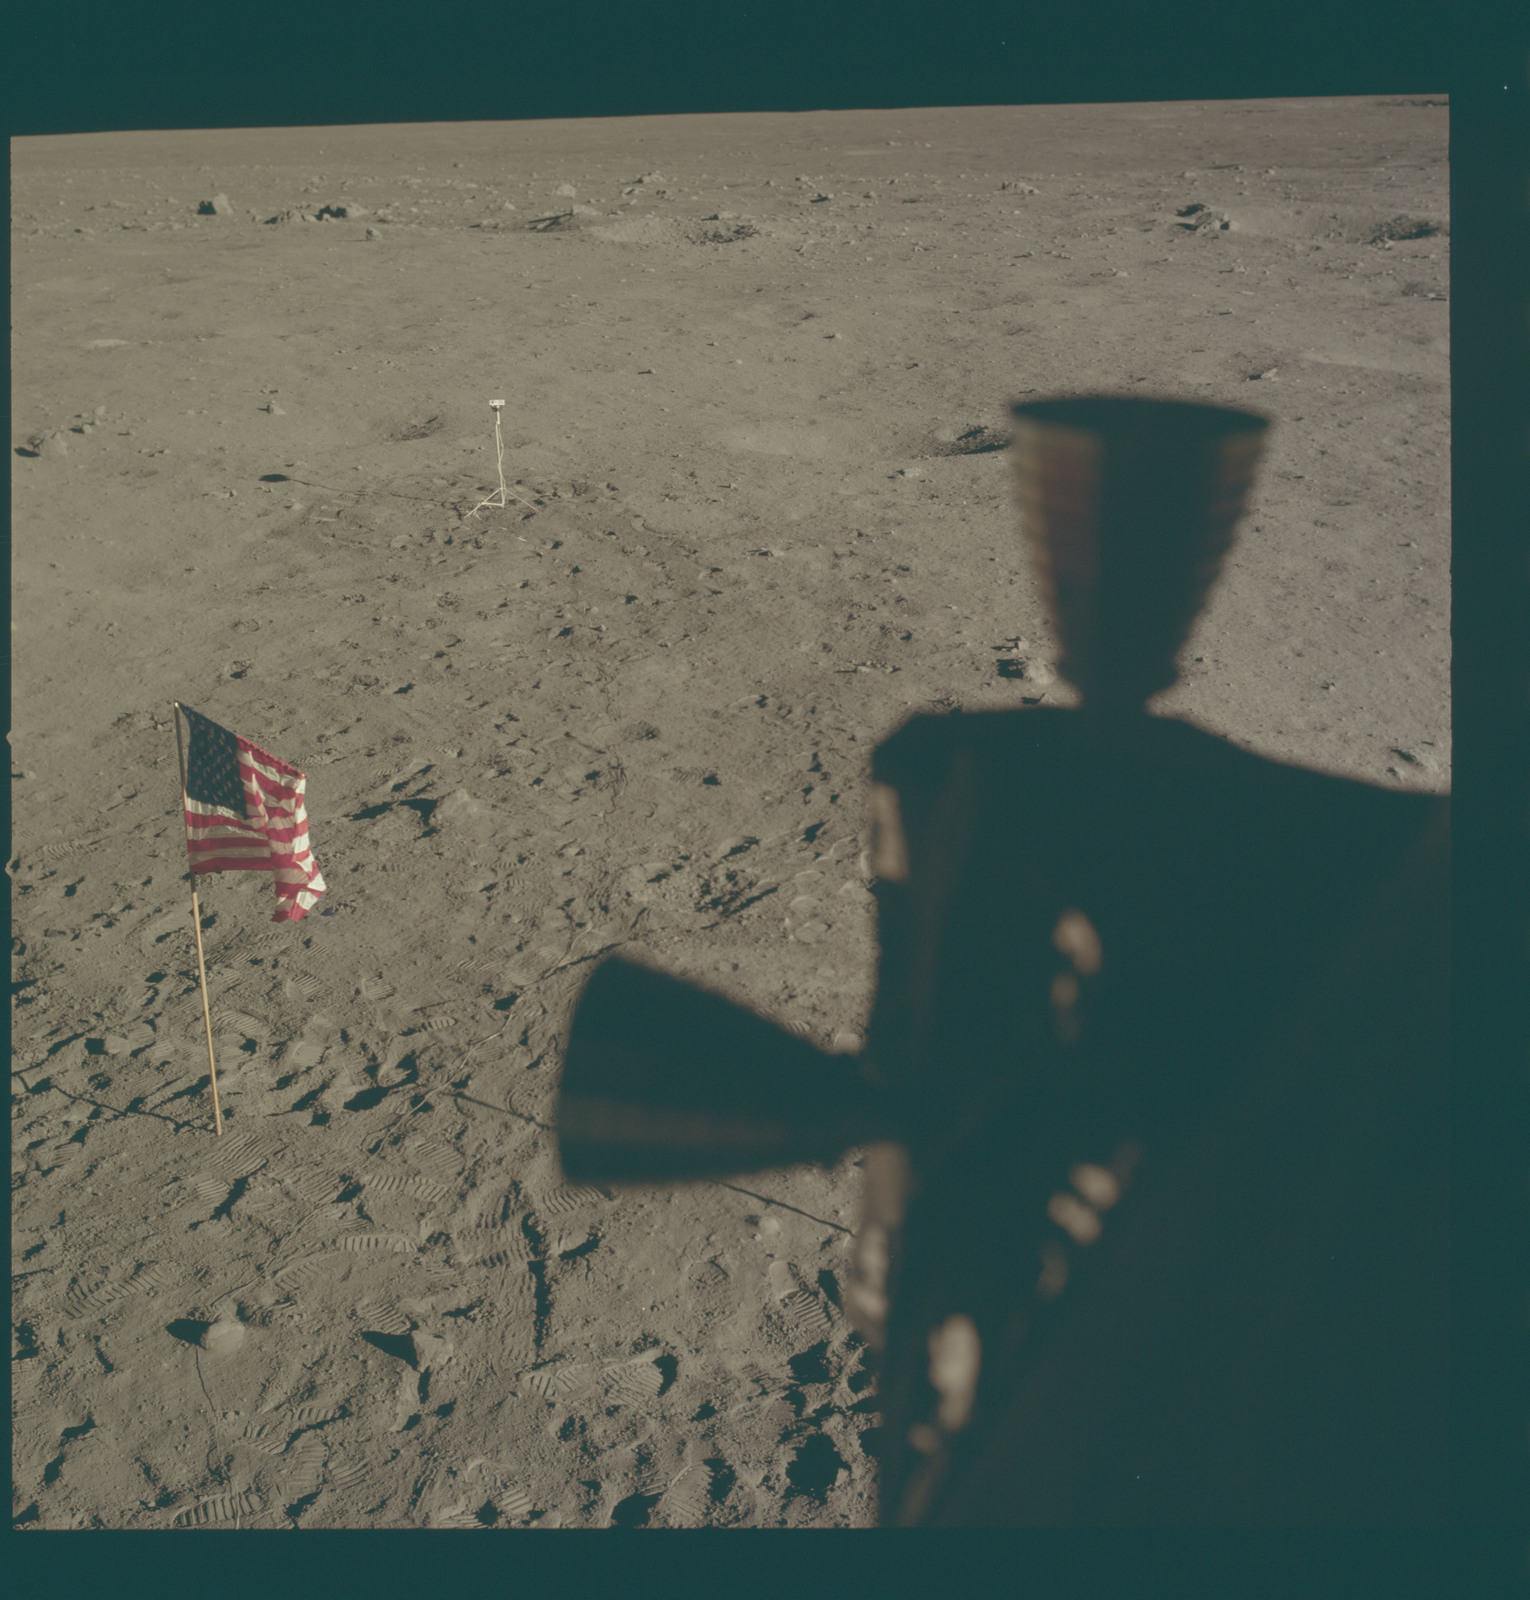 AS11-37-5481 - Apollo 11 - Apollo 11 Mission image - Lunar surface at Tranquility Base